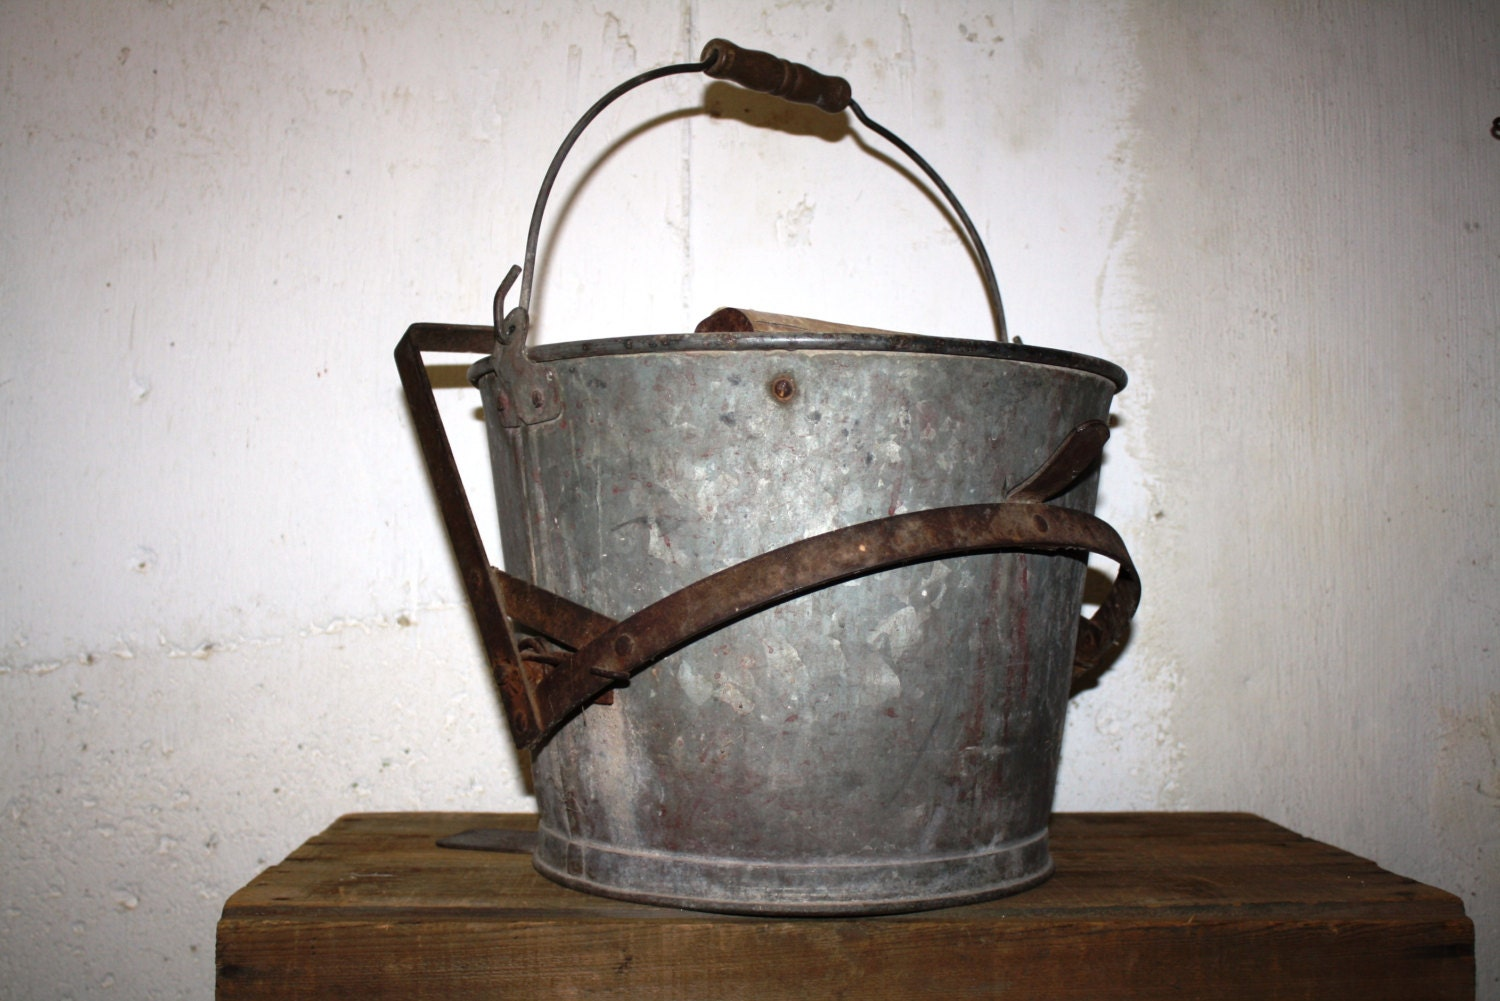 Vintage galvanized metal mop bucket with wringer for Old metal buckets